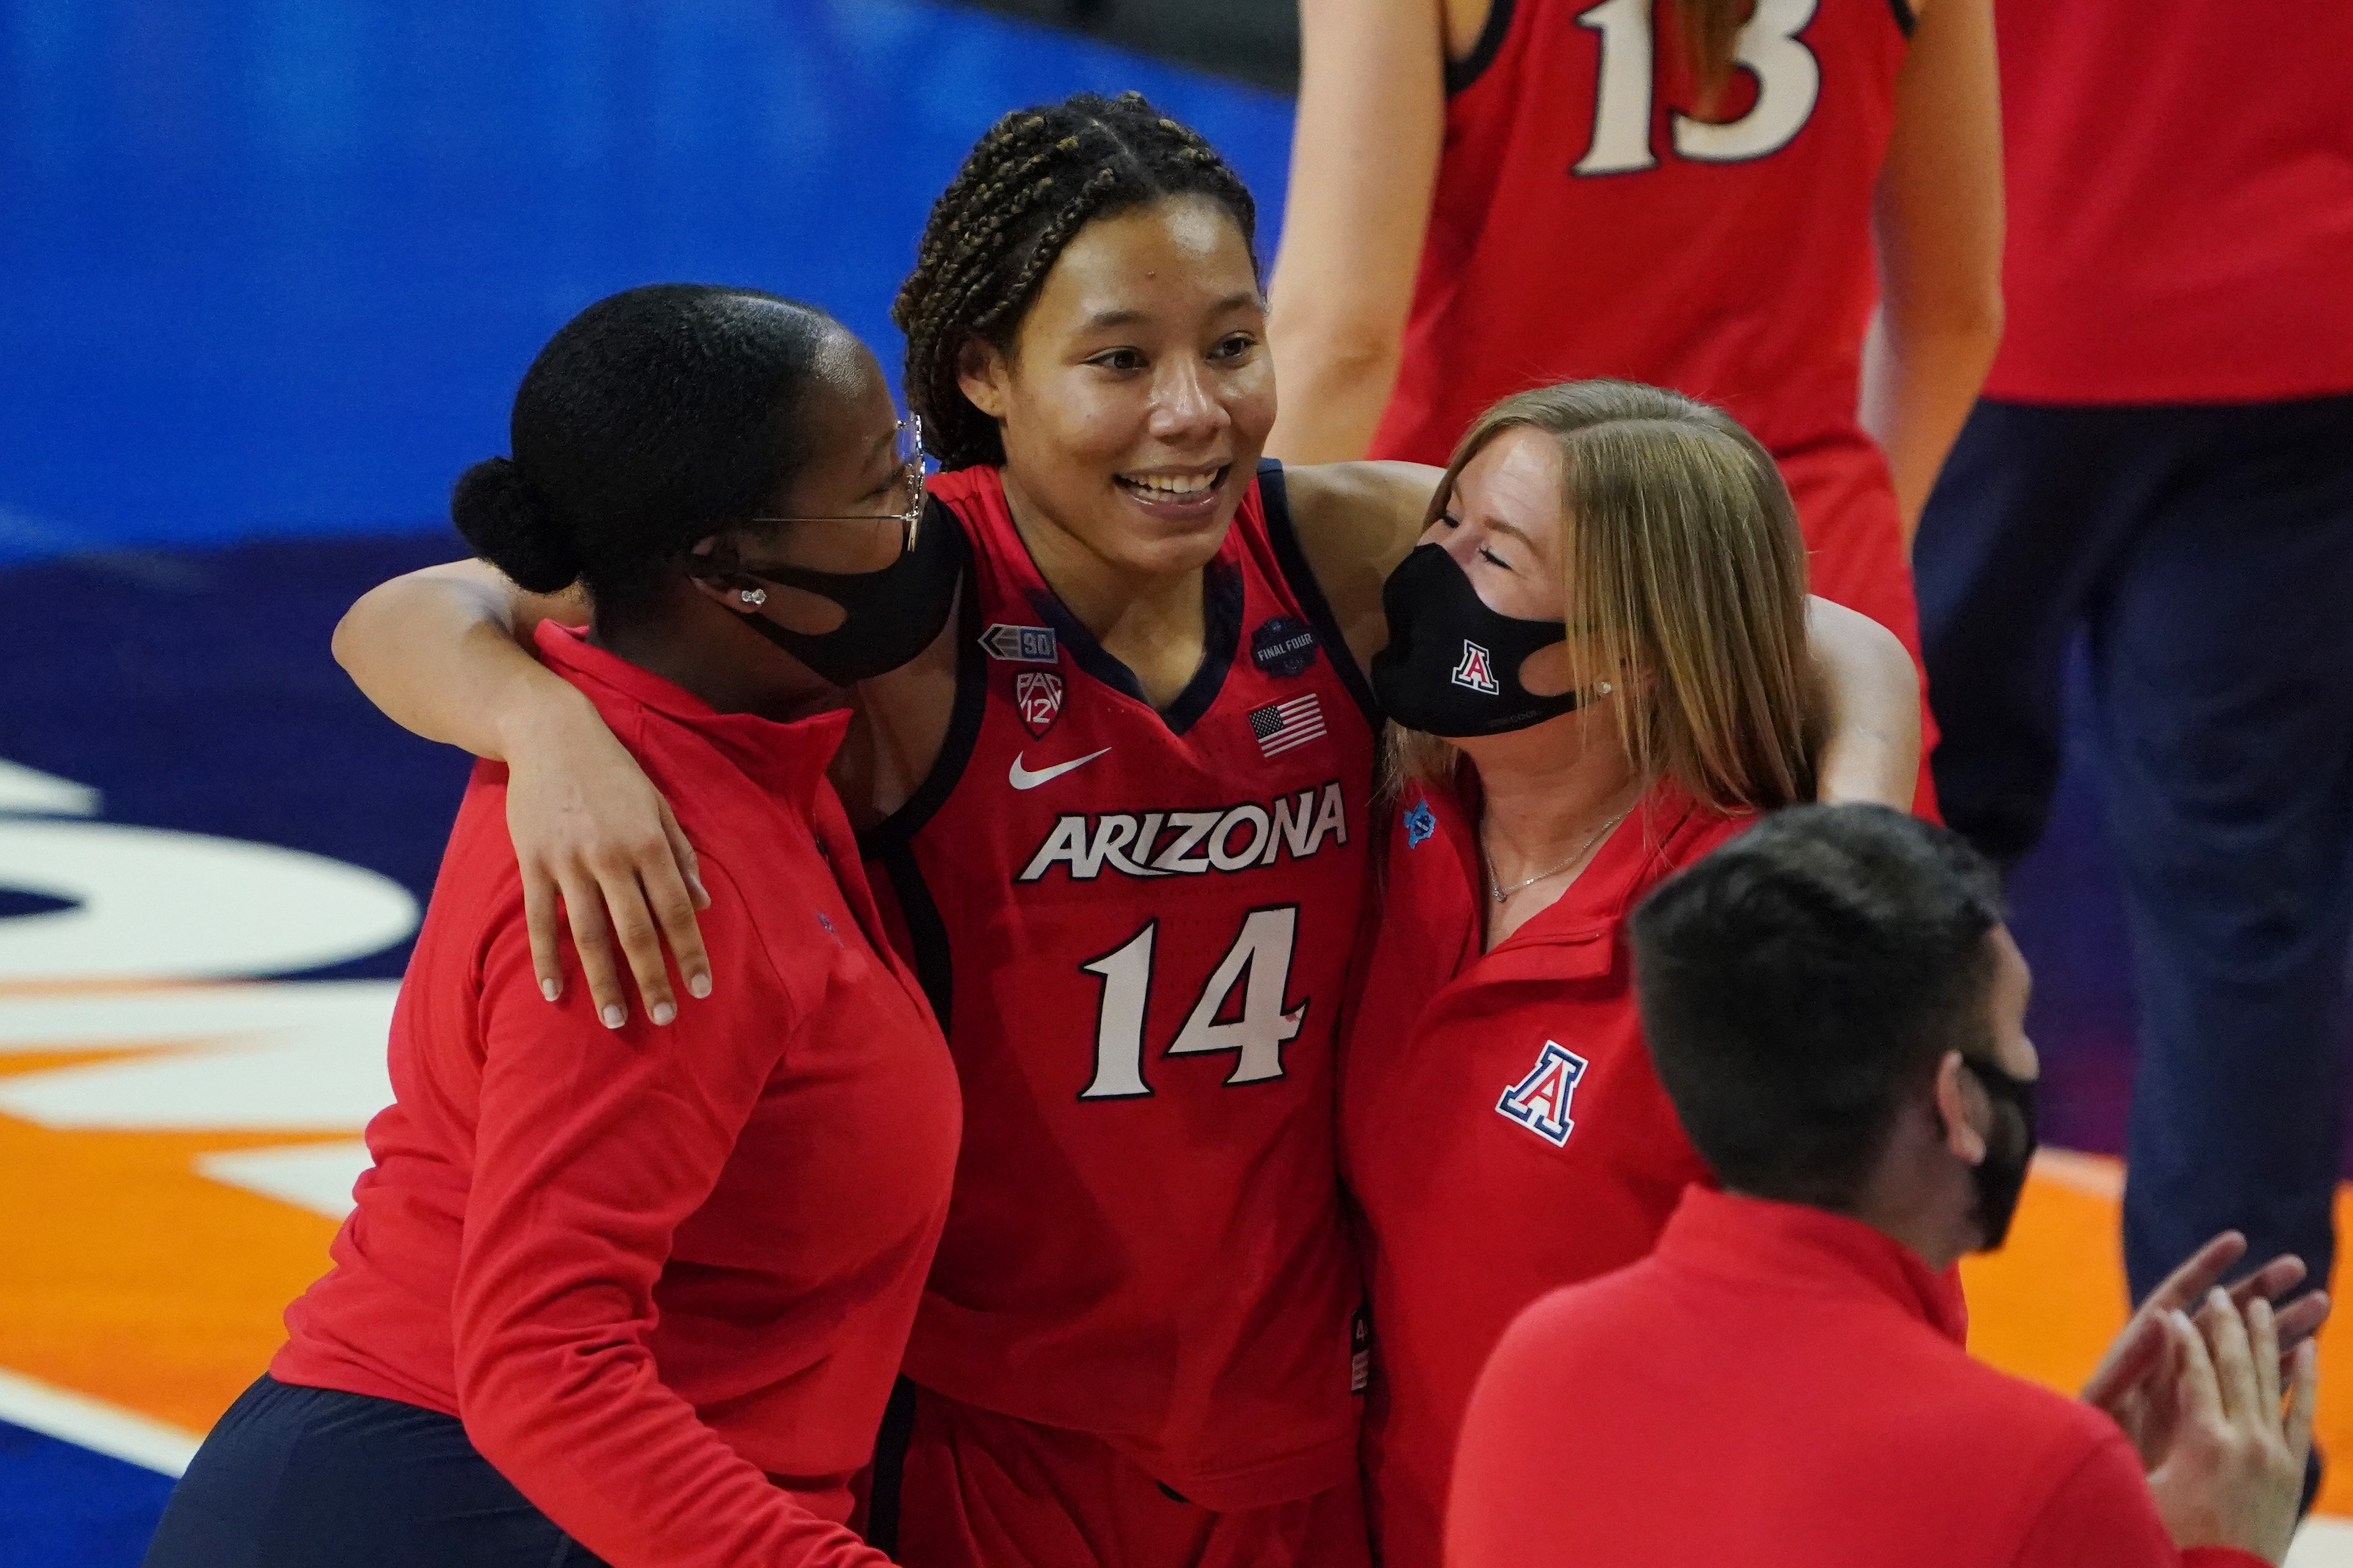 Arizona Wildcats forward Sam Thomas celebrates after defeating the UConn Huskies in the national semifinals of the women's Final Four of the 2021 NCAA Tournament at Alamodome.